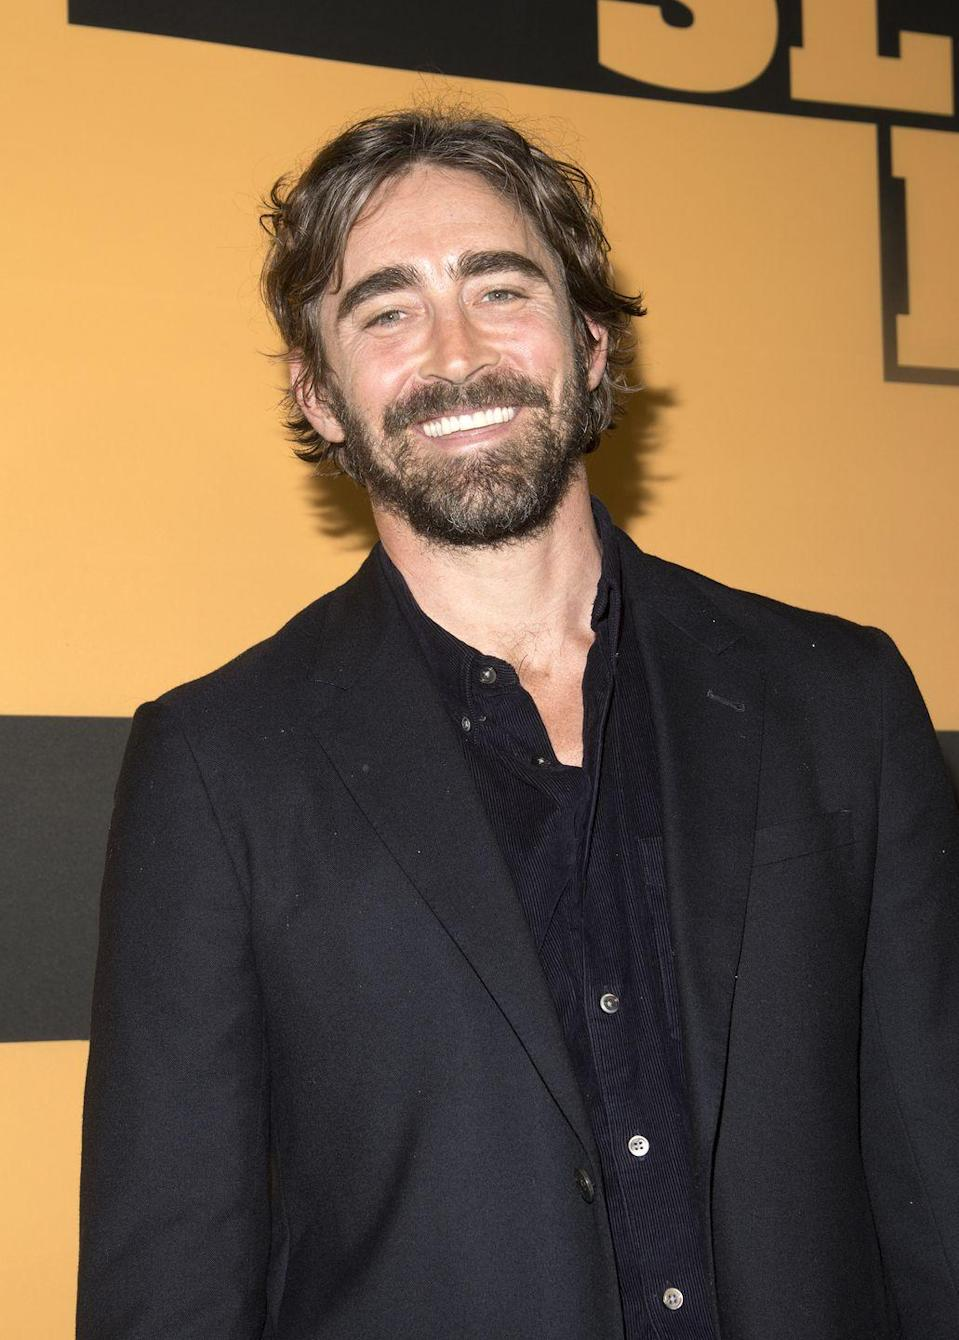 """<p><strong>The role: </strong><a href=""""https://movieweb.com/lee-pace-confirms-star-lord-audition-for-guardians-of-the-galaxy/"""" rel=""""nofollow noopener"""" target=""""_blank"""" data-ylk=""""slk:Star-Lord"""" class=""""link rapid-noclick-resp"""">Star-Lord</a> in <em>Guardians of the Galaxy</em></p><p><strong>Who *actually* played it:</strong> Chris Pratt</p><p><strong>The role they played instead: </strong>Ronan the Accuser</p><p>Back in 2012, Pace did an interview where he said he was auditioning for the role of Star-Lord and was """"very excited about it."""" Pace didn't end up landing the title role, but did end up playing a smaller villain instead.</p>"""